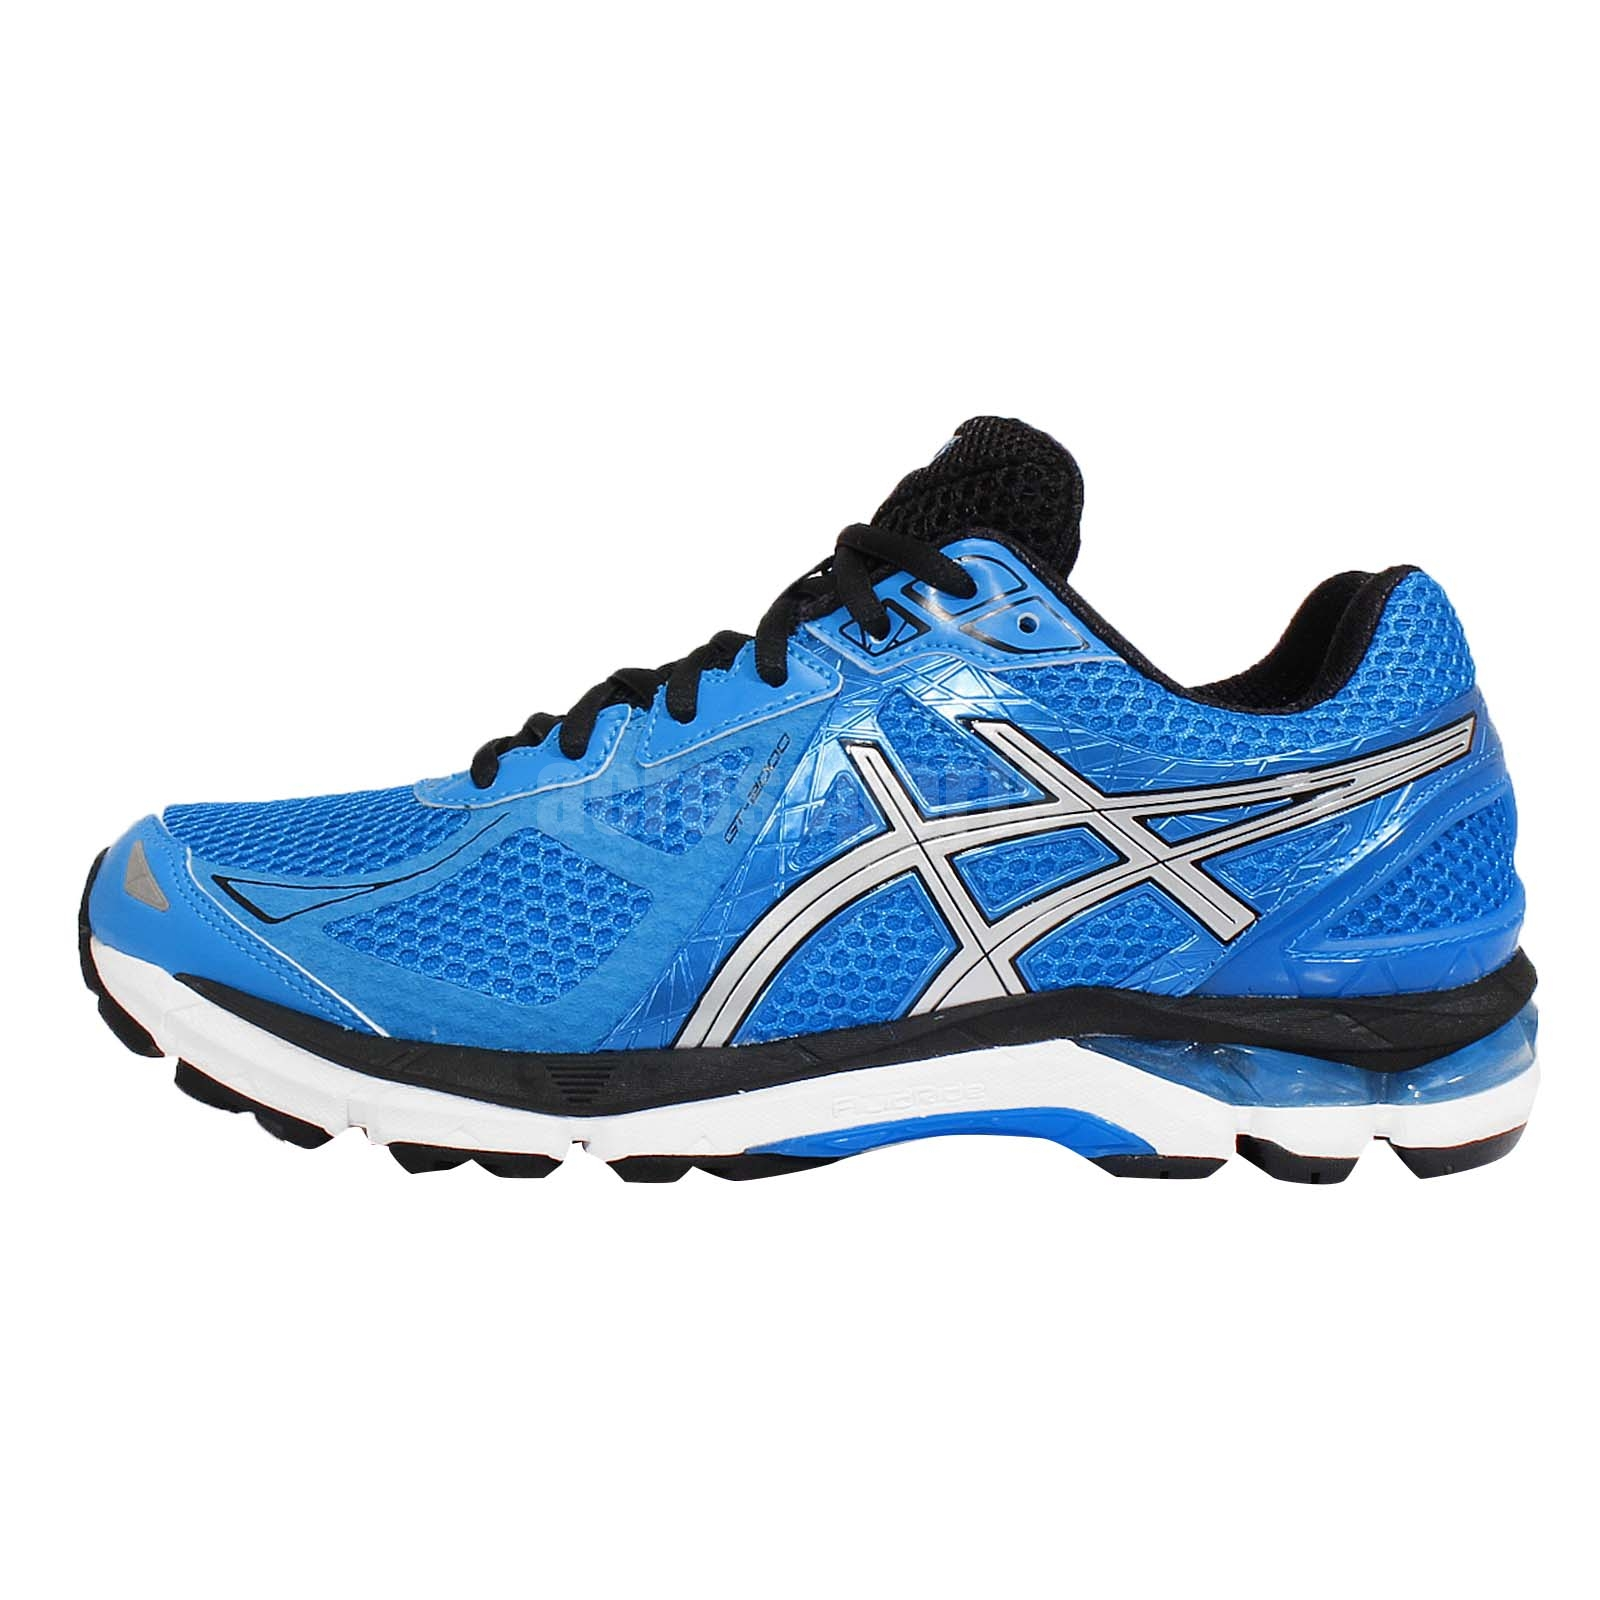 asics gt 2000 new york 3 sw super wide blue running shoes. Black Bedroom Furniture Sets. Home Design Ideas